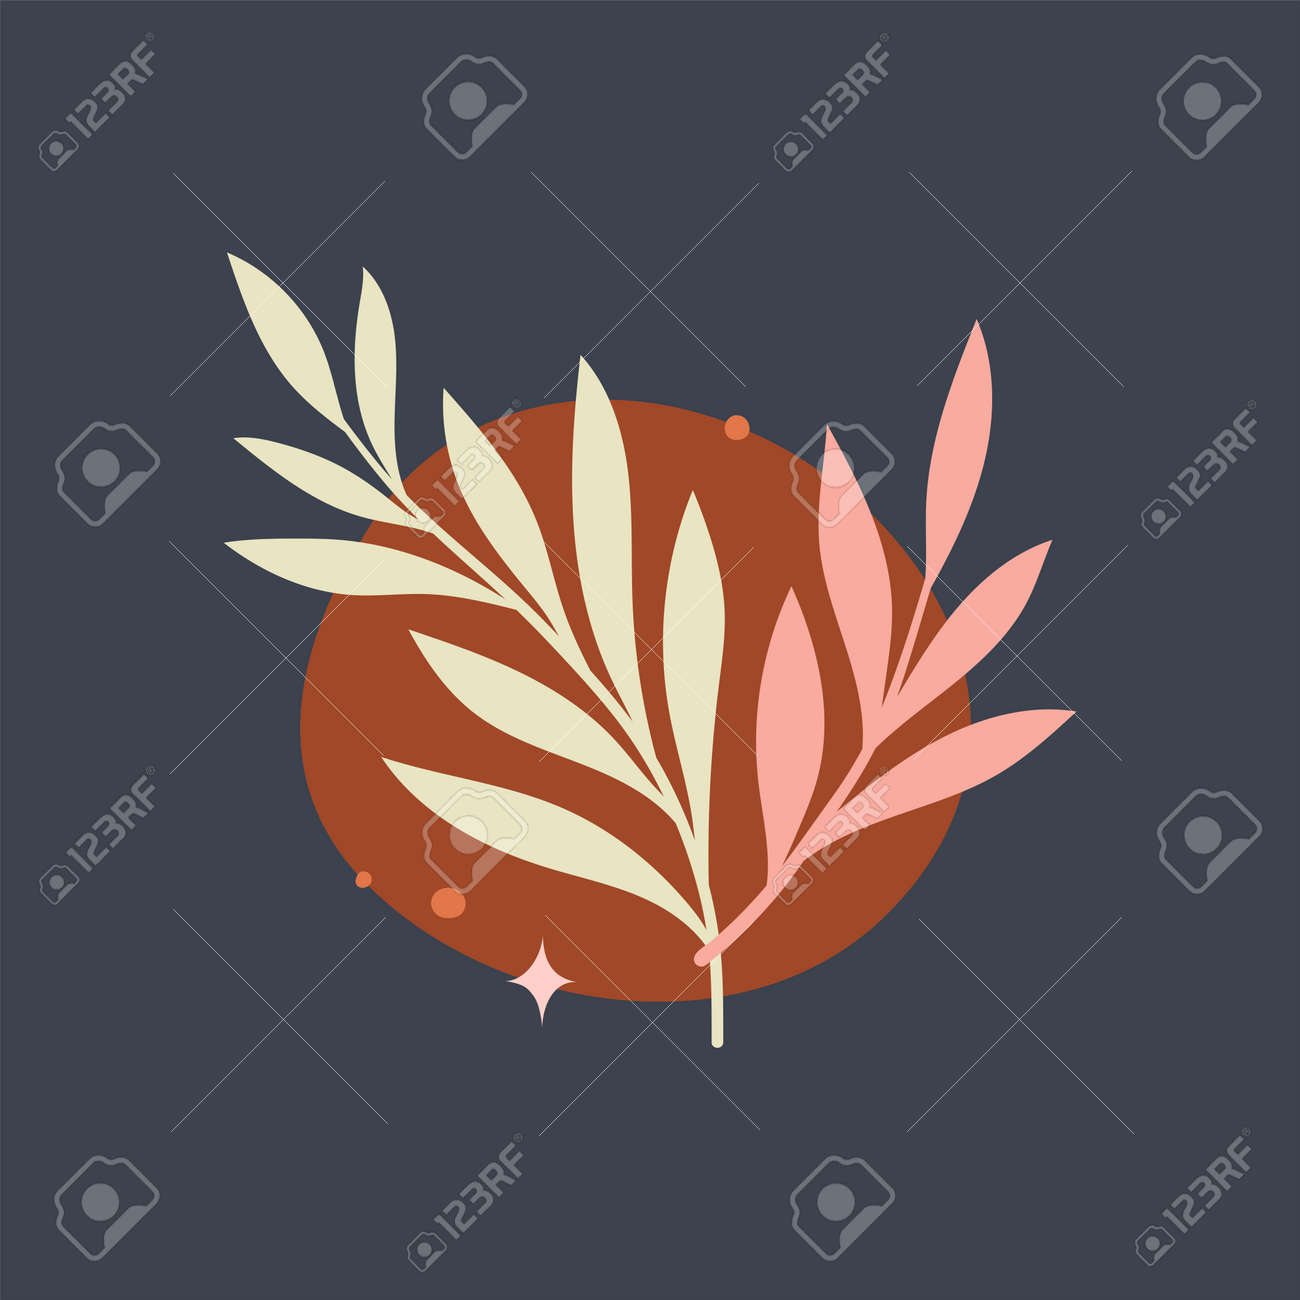 Vector modern floral arrangement background. Cute delicate botanical illustration with leaves and plants. - 168265036